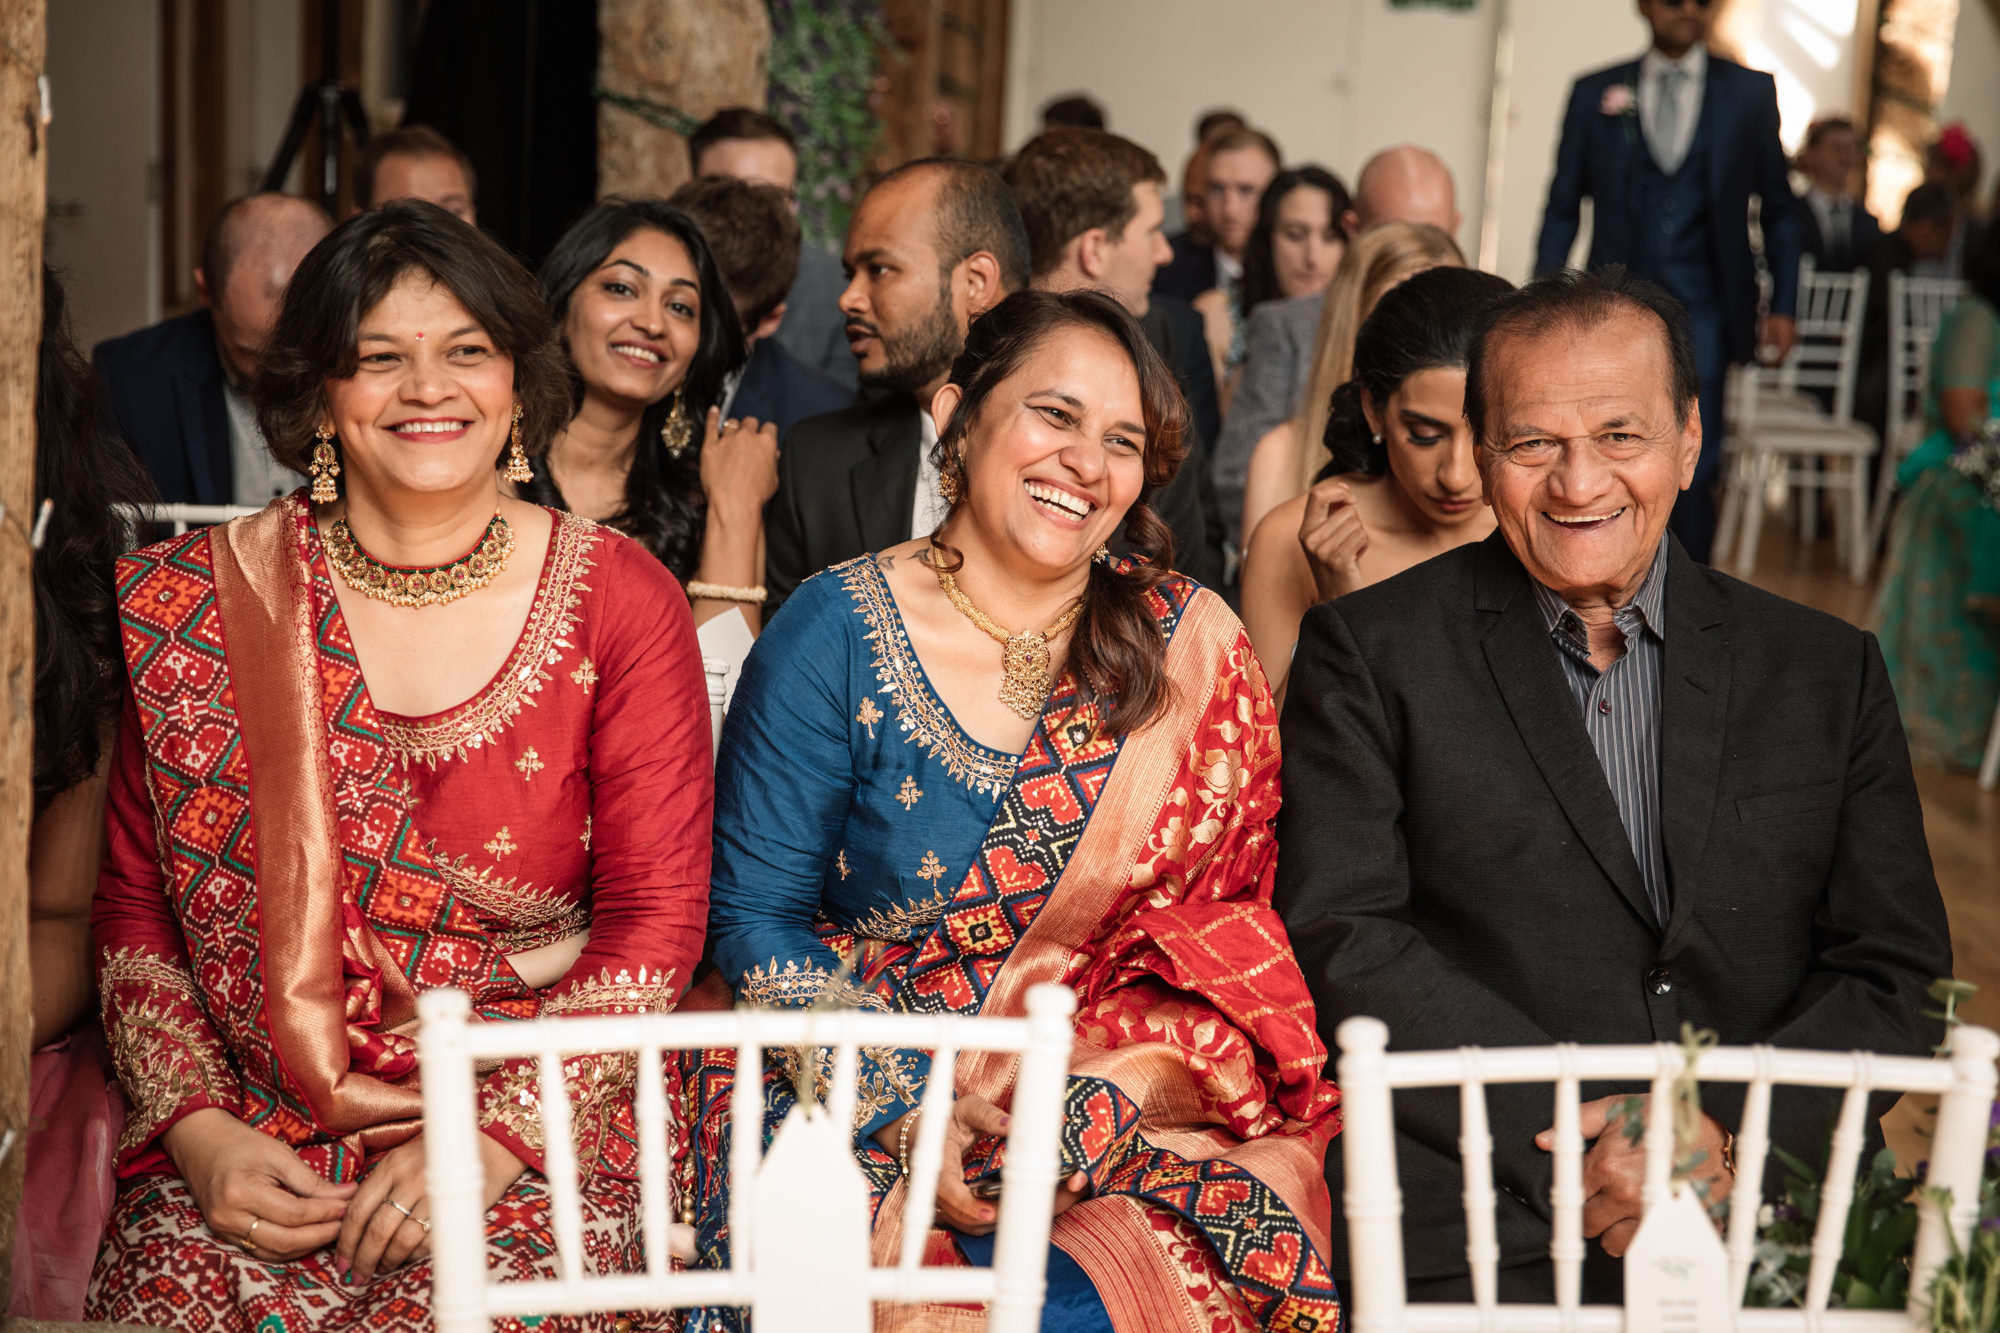 Guests in colourful Indian saris during wedding ceremony